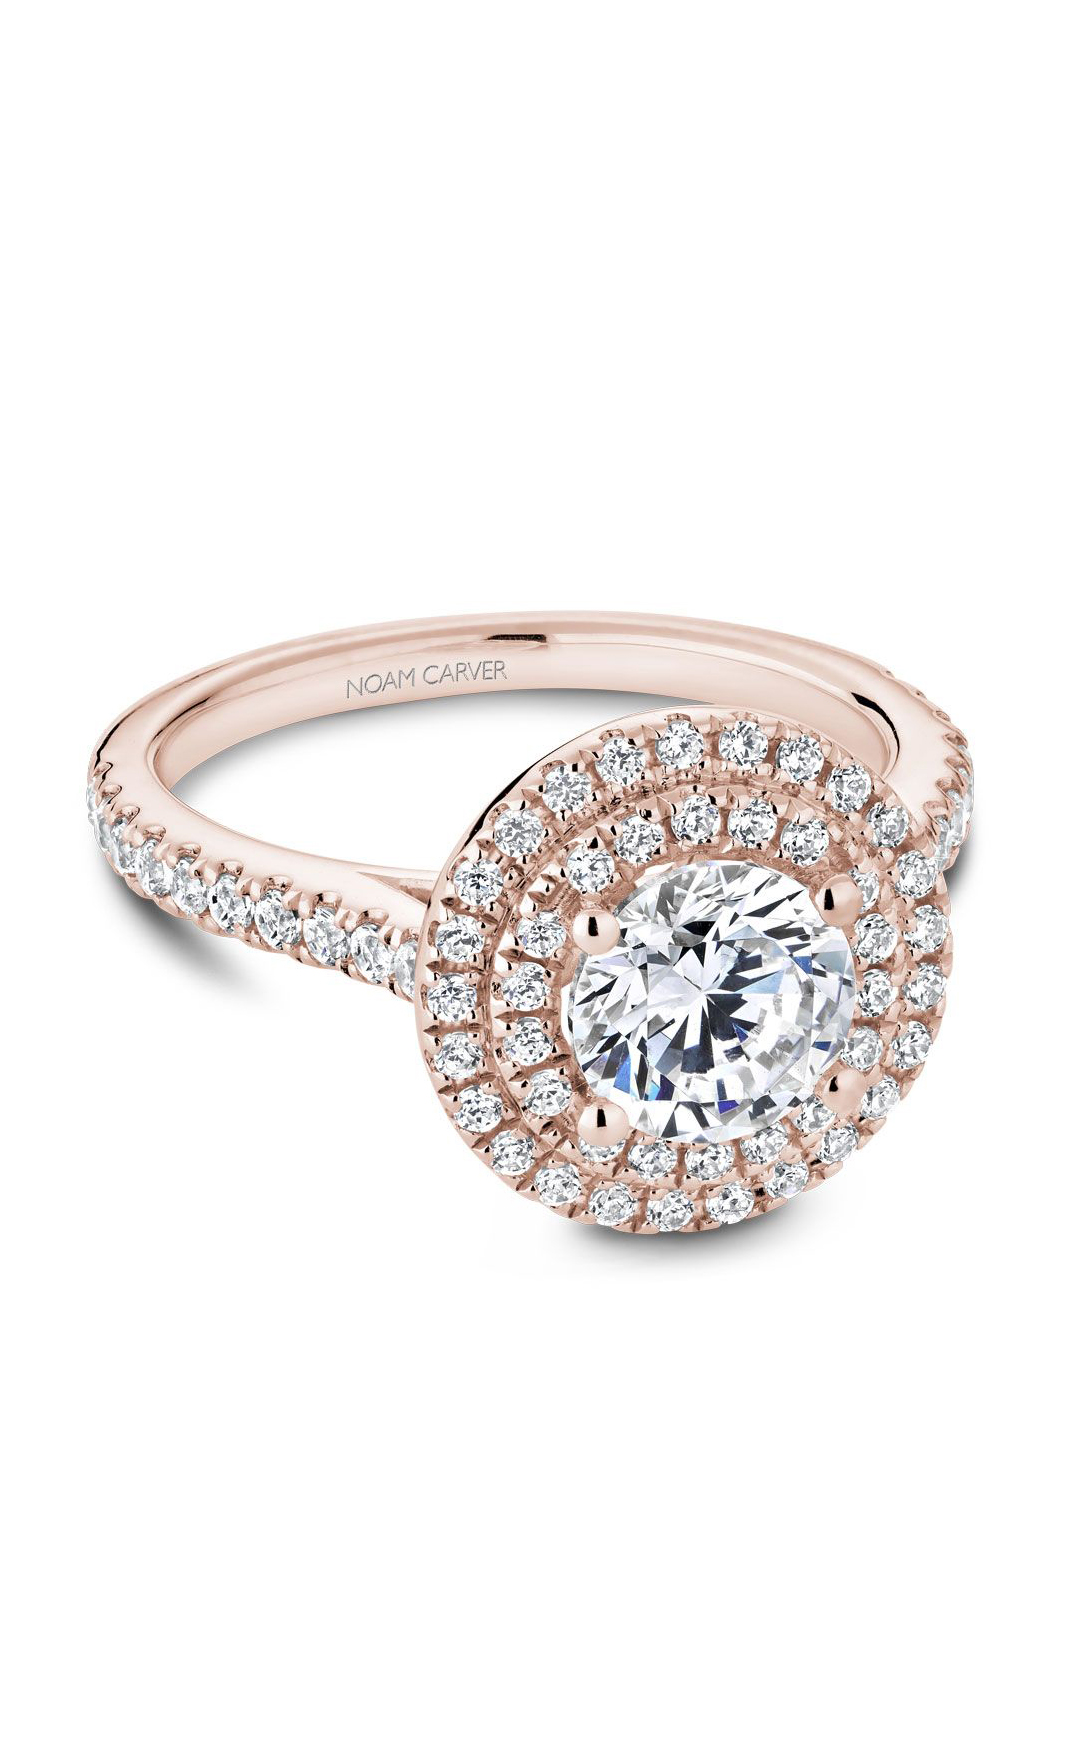 Noam Carver Modern Engagement Ring R051-01RA product image